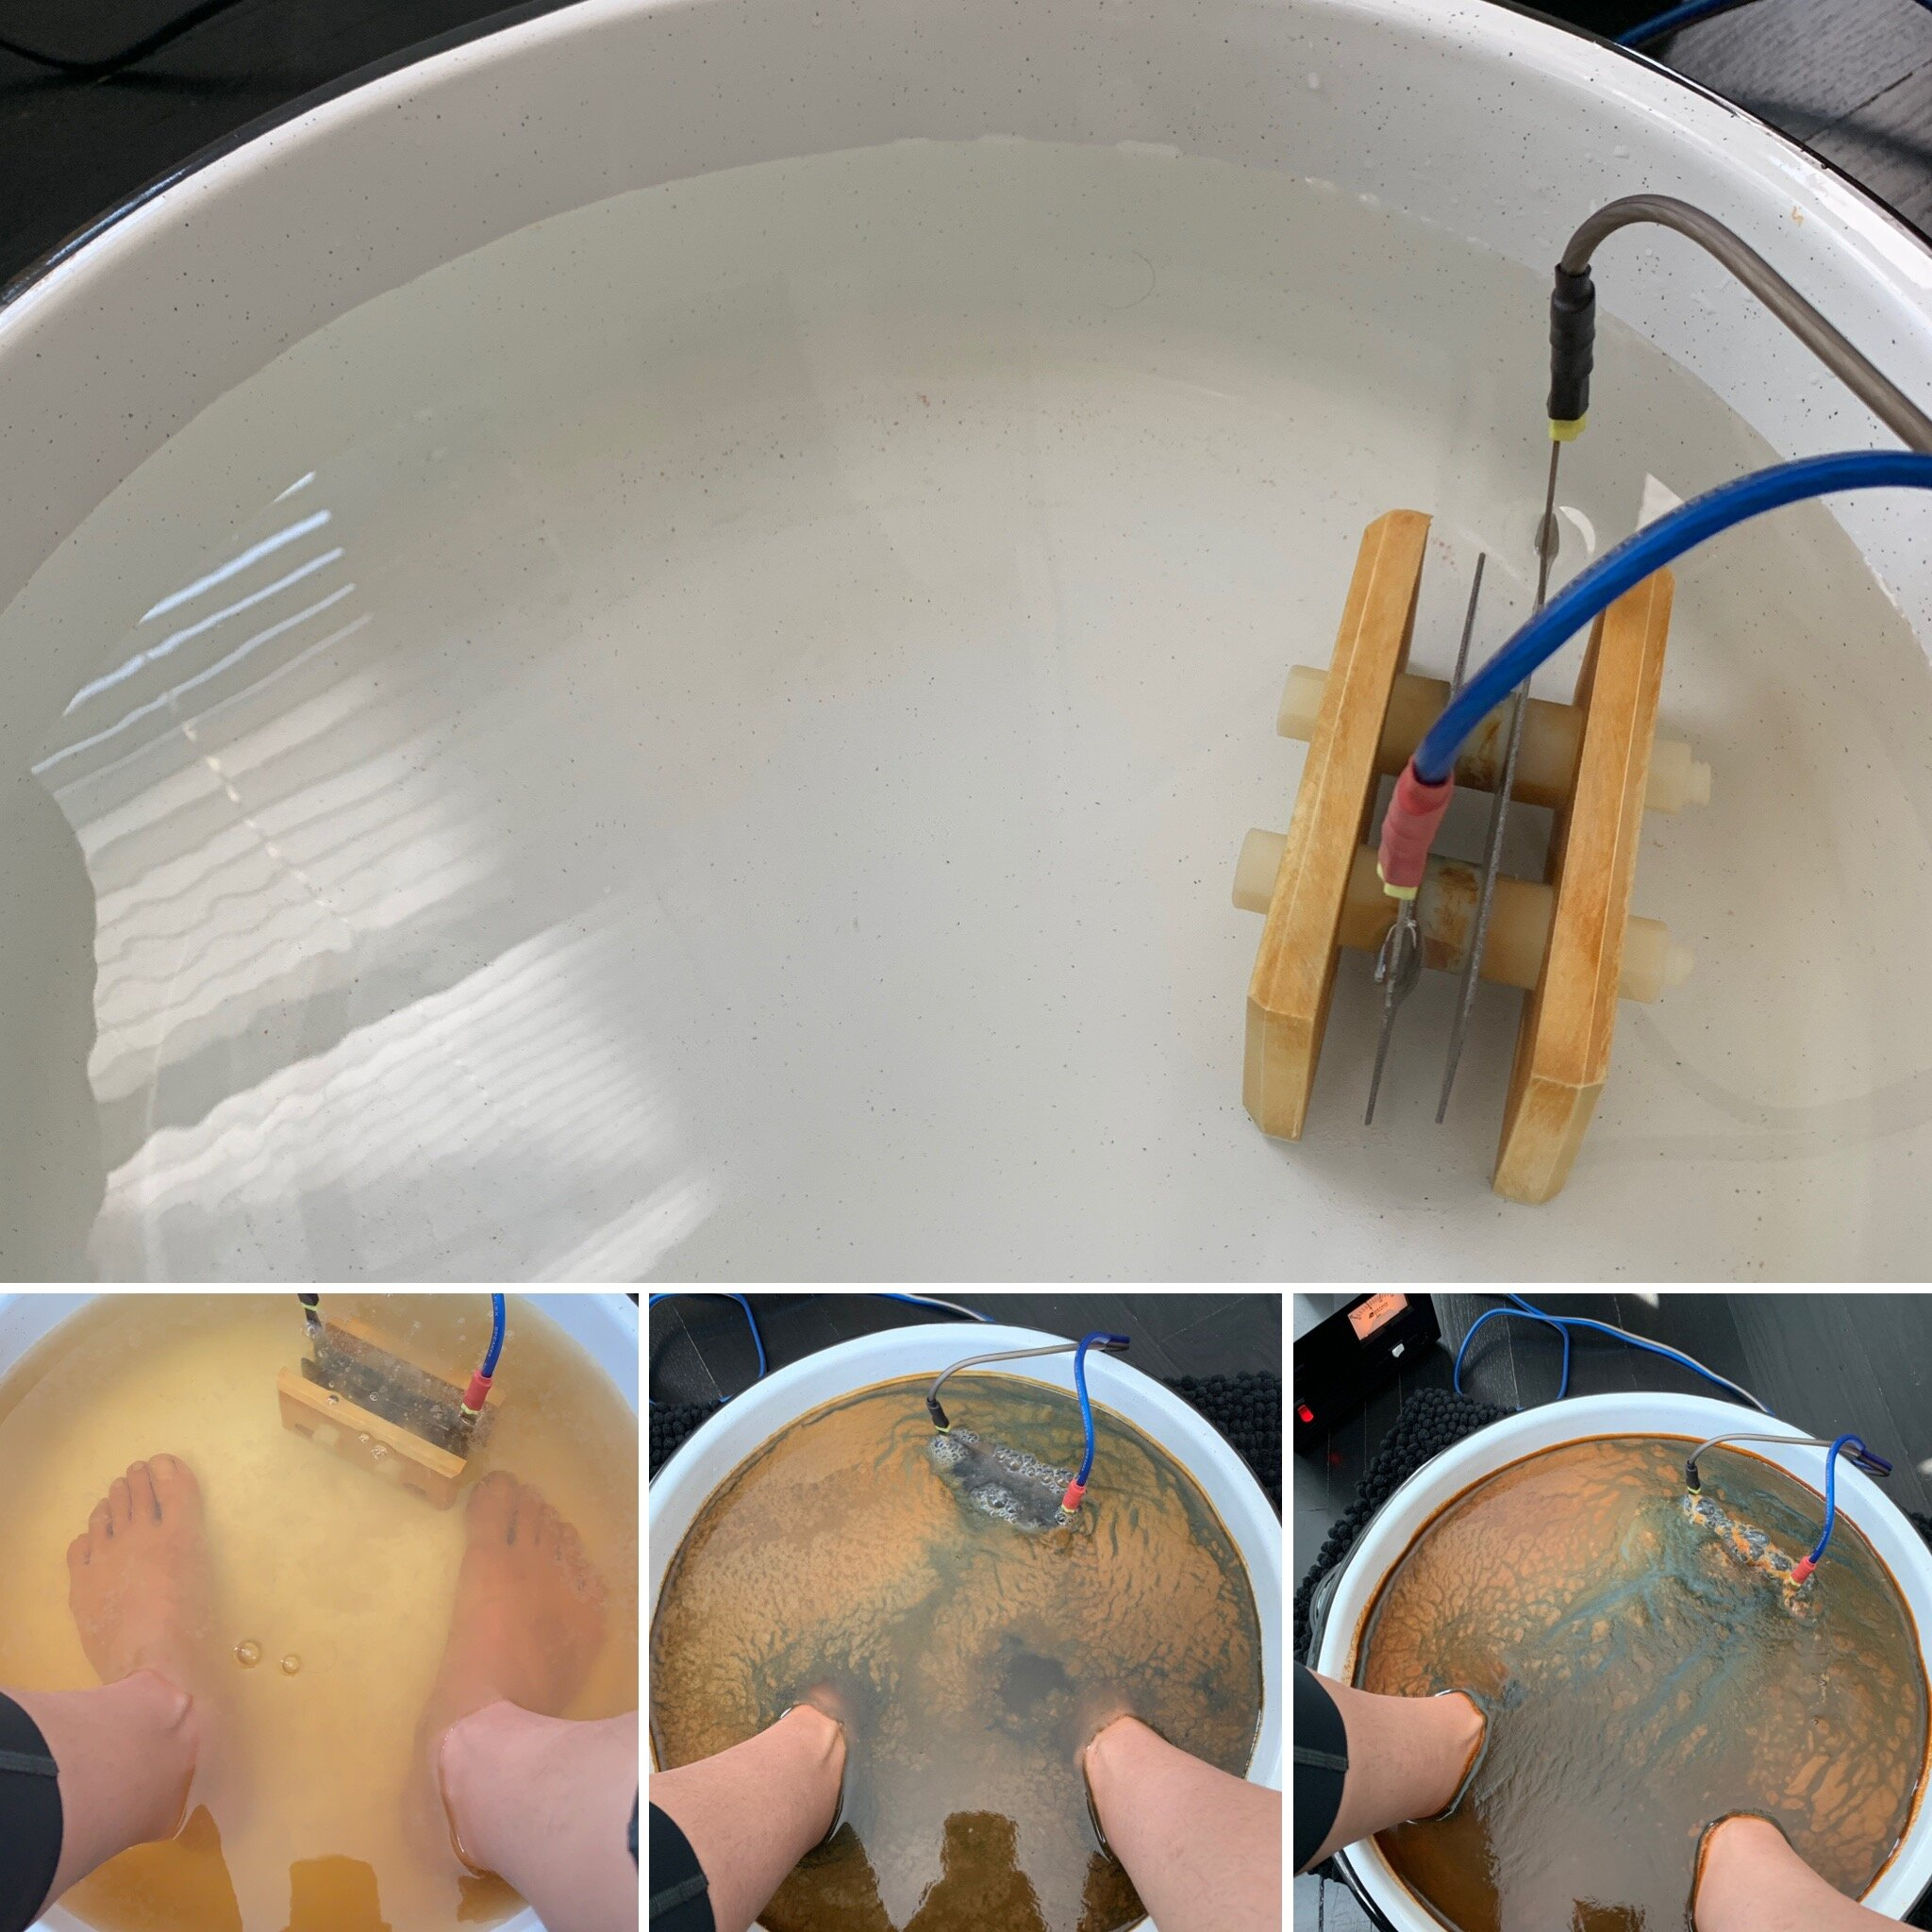 This is the process of the ionic foot bath from start to finish